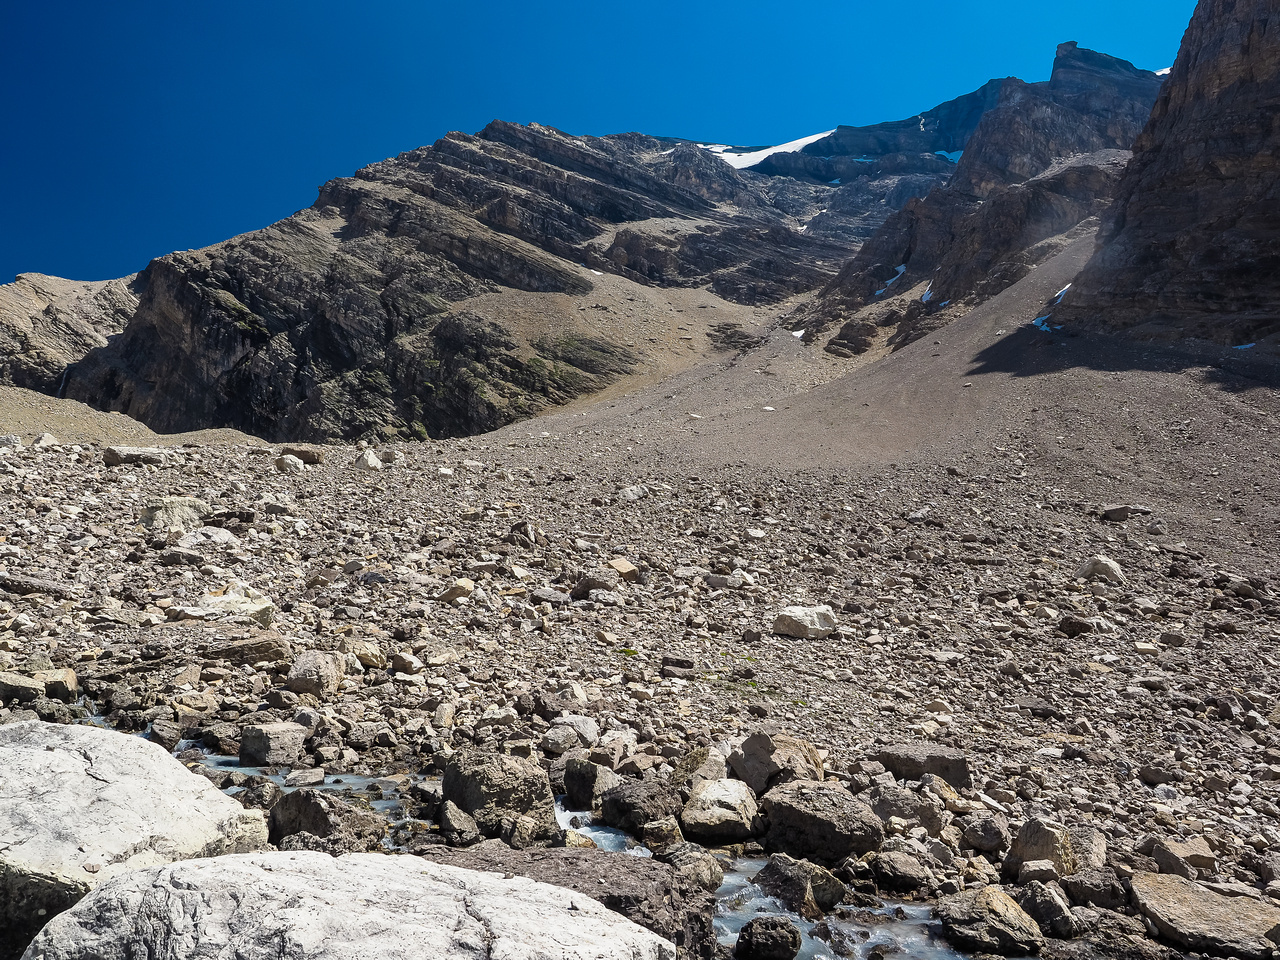 Cataract Peak looms over the stream from just beneath our bivy ridge. The obvious scree gully beckons us onward.